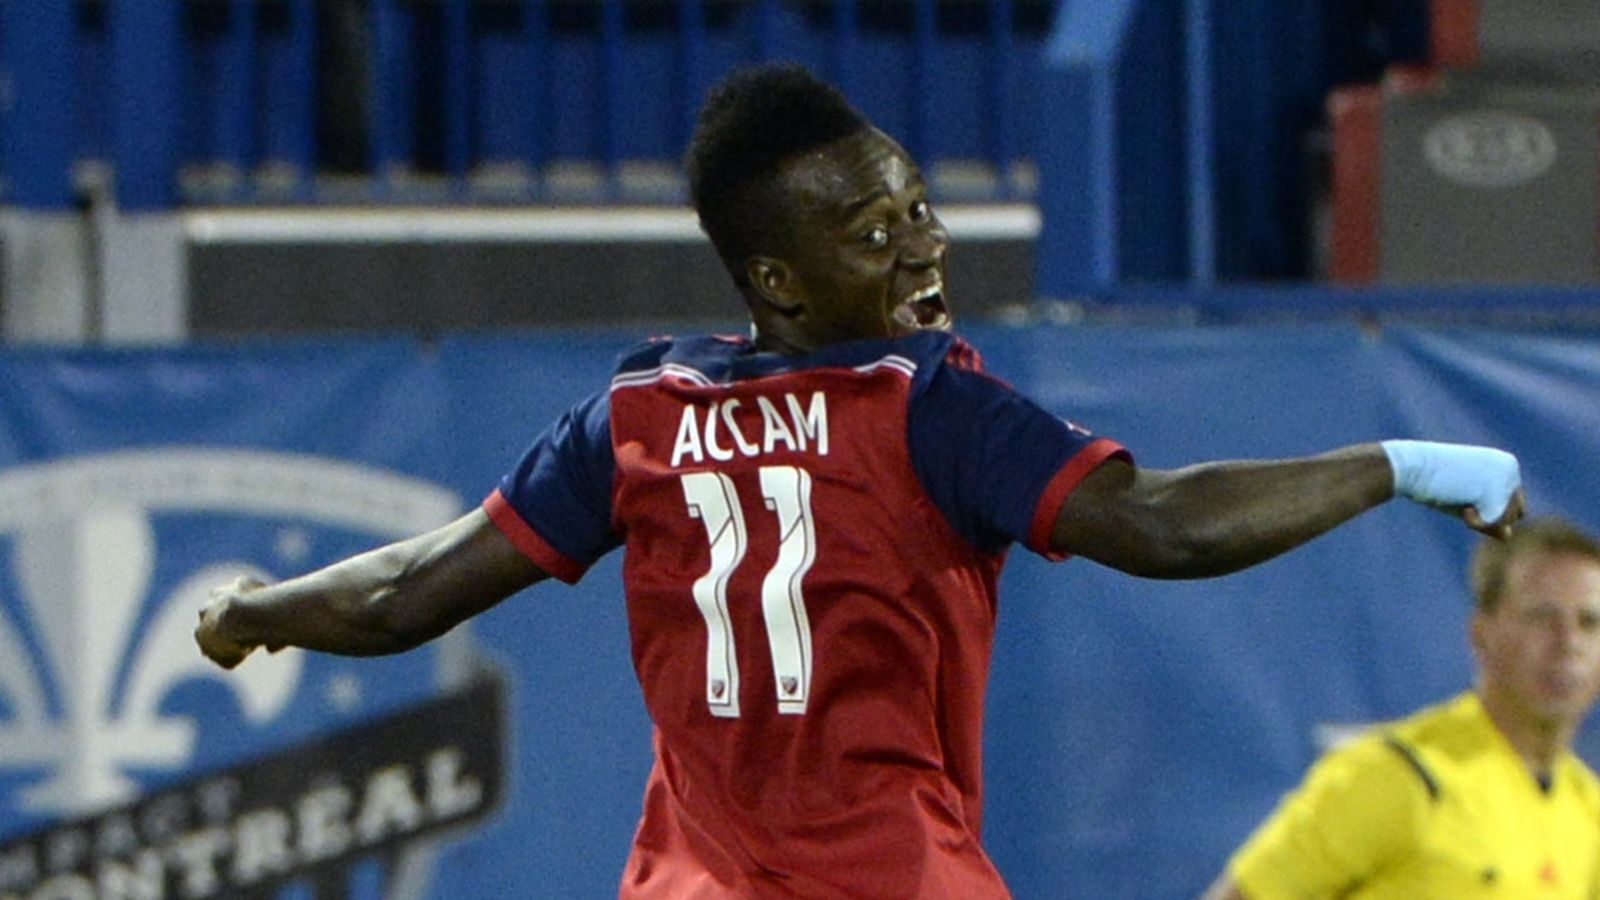 VIDEO: Watch David Accam's consolation goal for Chicago Fire in US Open Cup final semis defeat